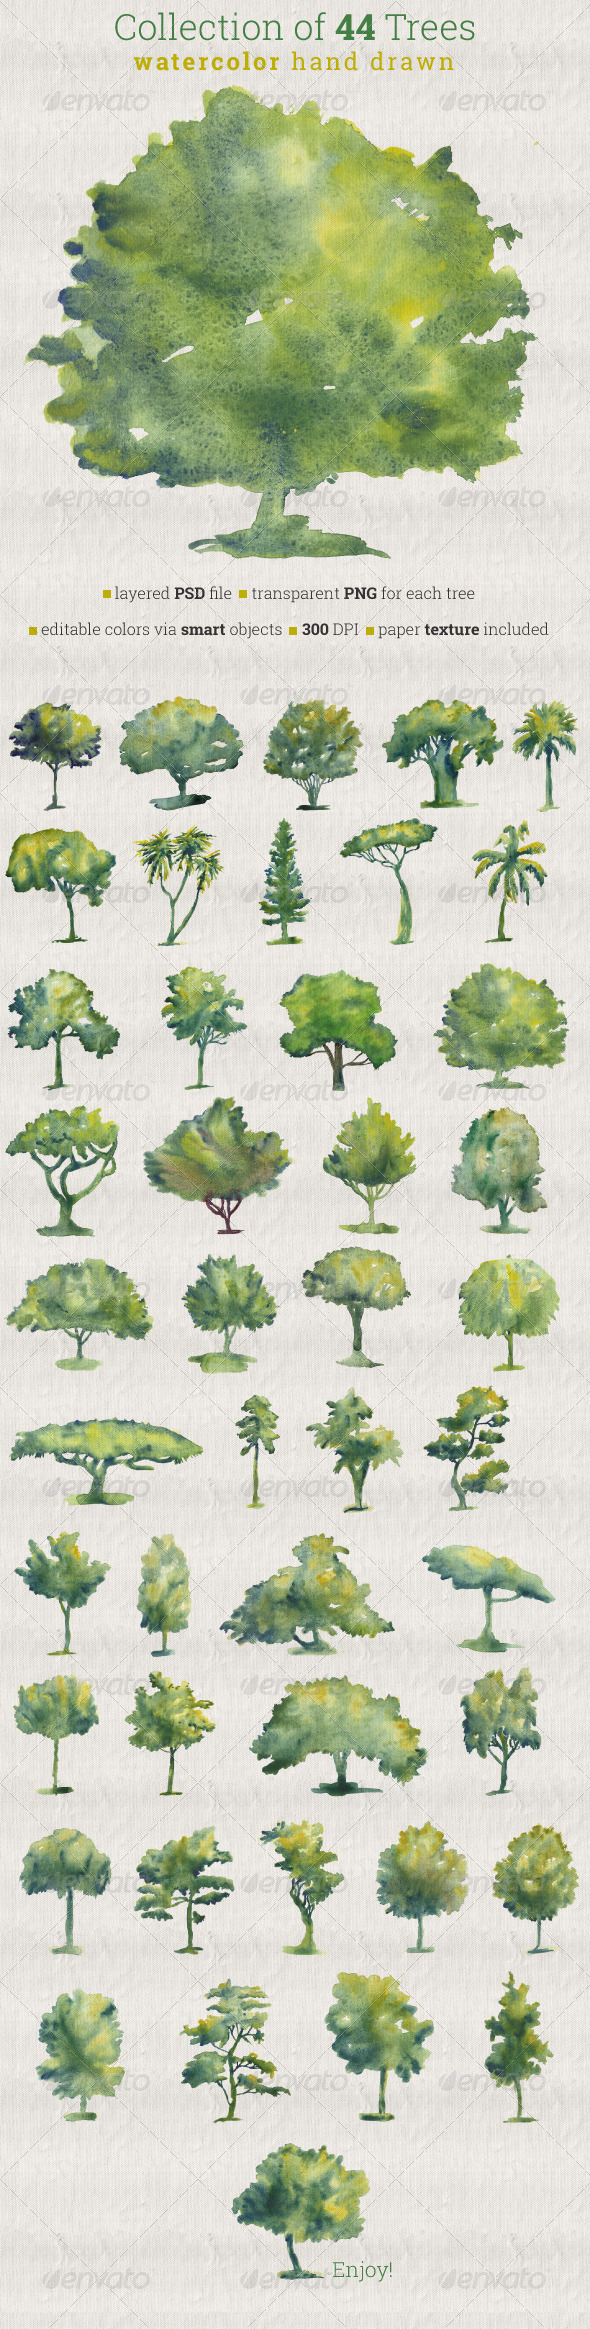 GraphicRiver Collection of 44 Watercolor Trees 6762350